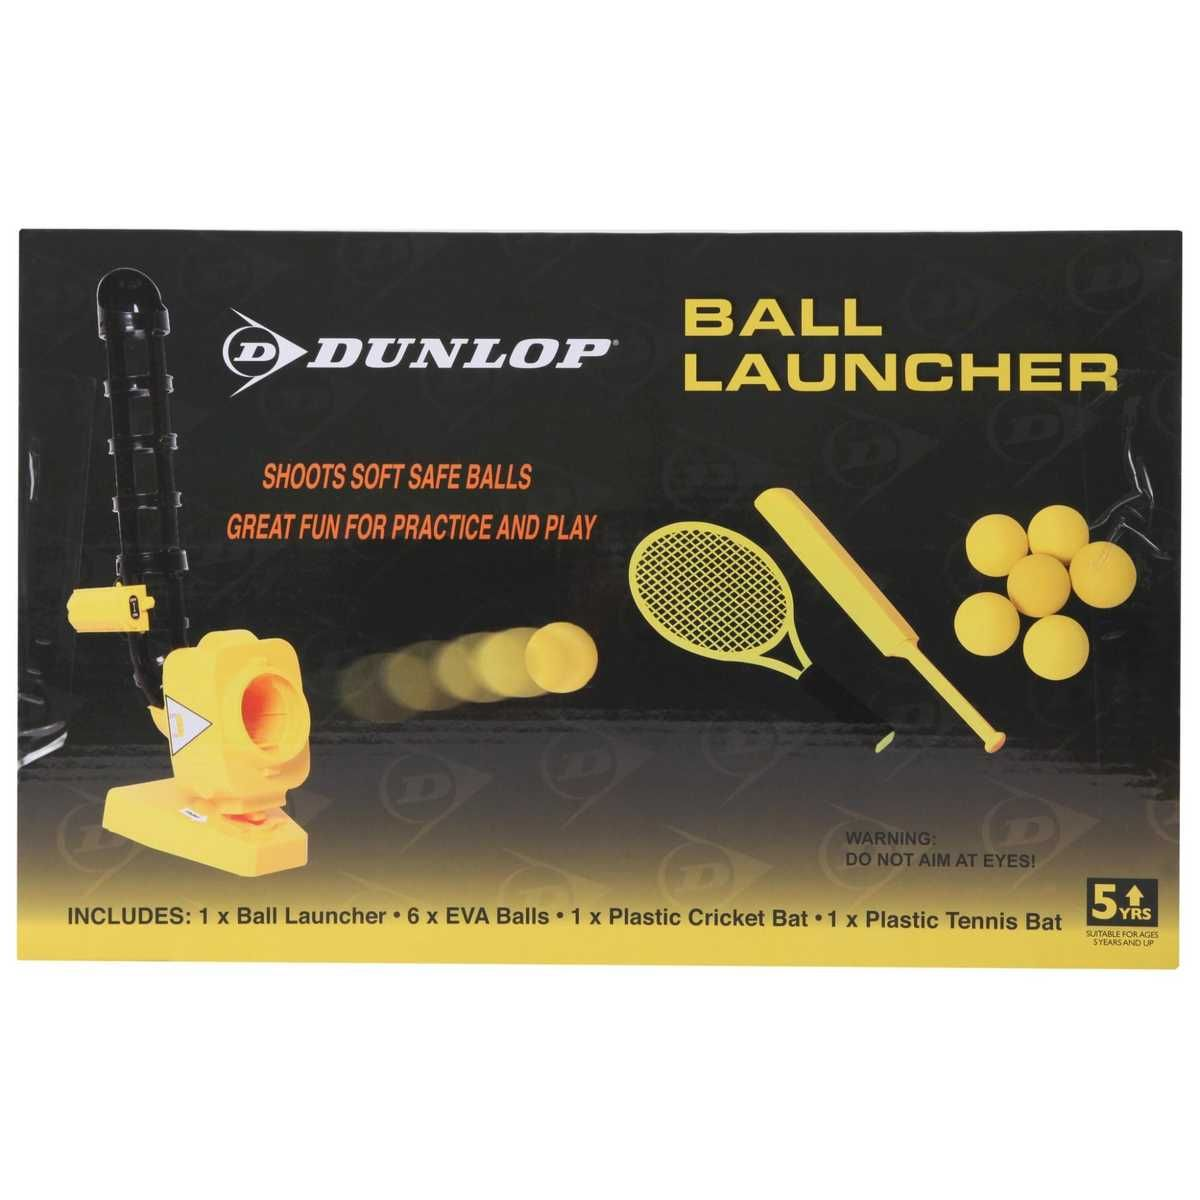 This Dunlop Ball Launcher Is A Fully Featured Ball Machine Makes The Tennis And Cricket Tutor Possible It Shoots Soft Tennis Gifts Ball Launcher Sports Brands